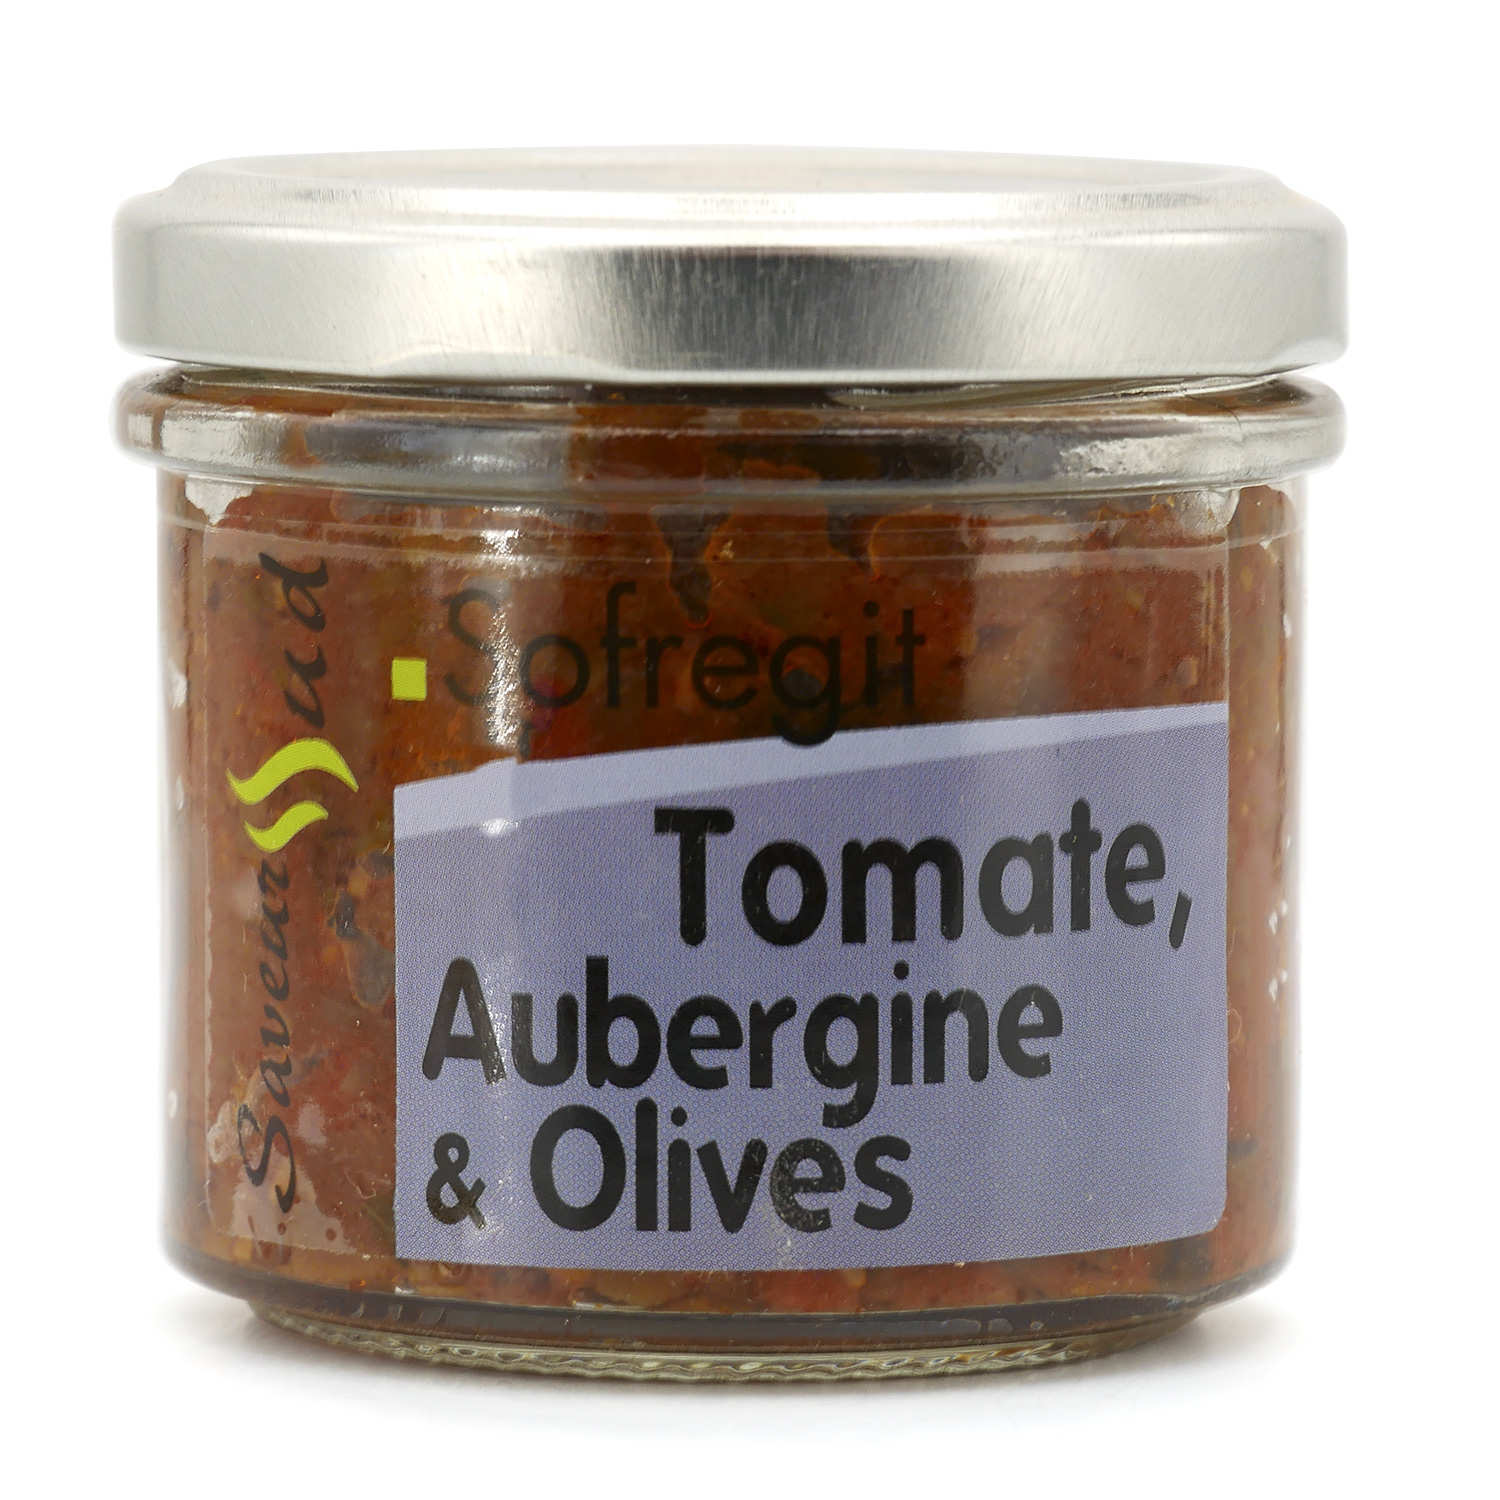 Sofregit - spiced tomato, aubergine & olive spread